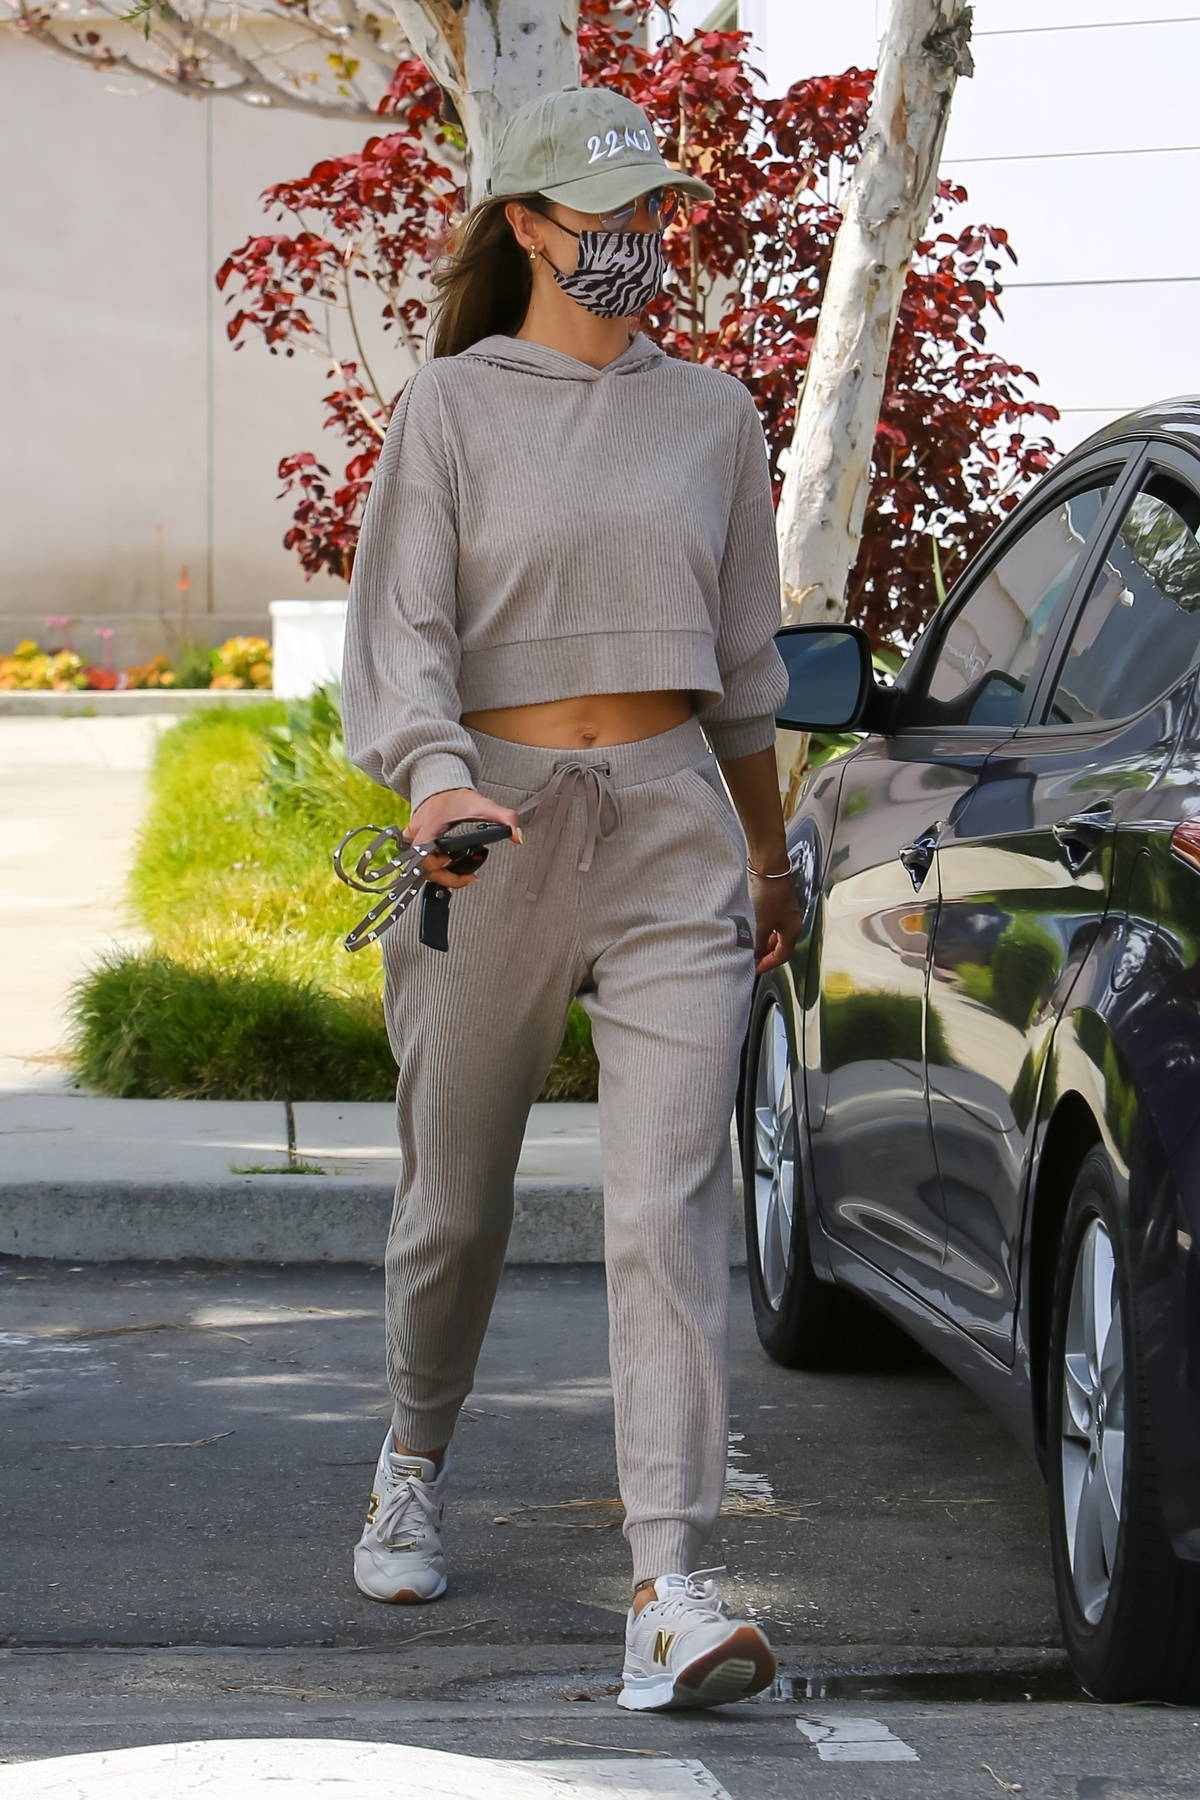 Alessandra Ambrosio looks casually chic in a grey sweatsuit during a lunch outing with friends in Malibu, California